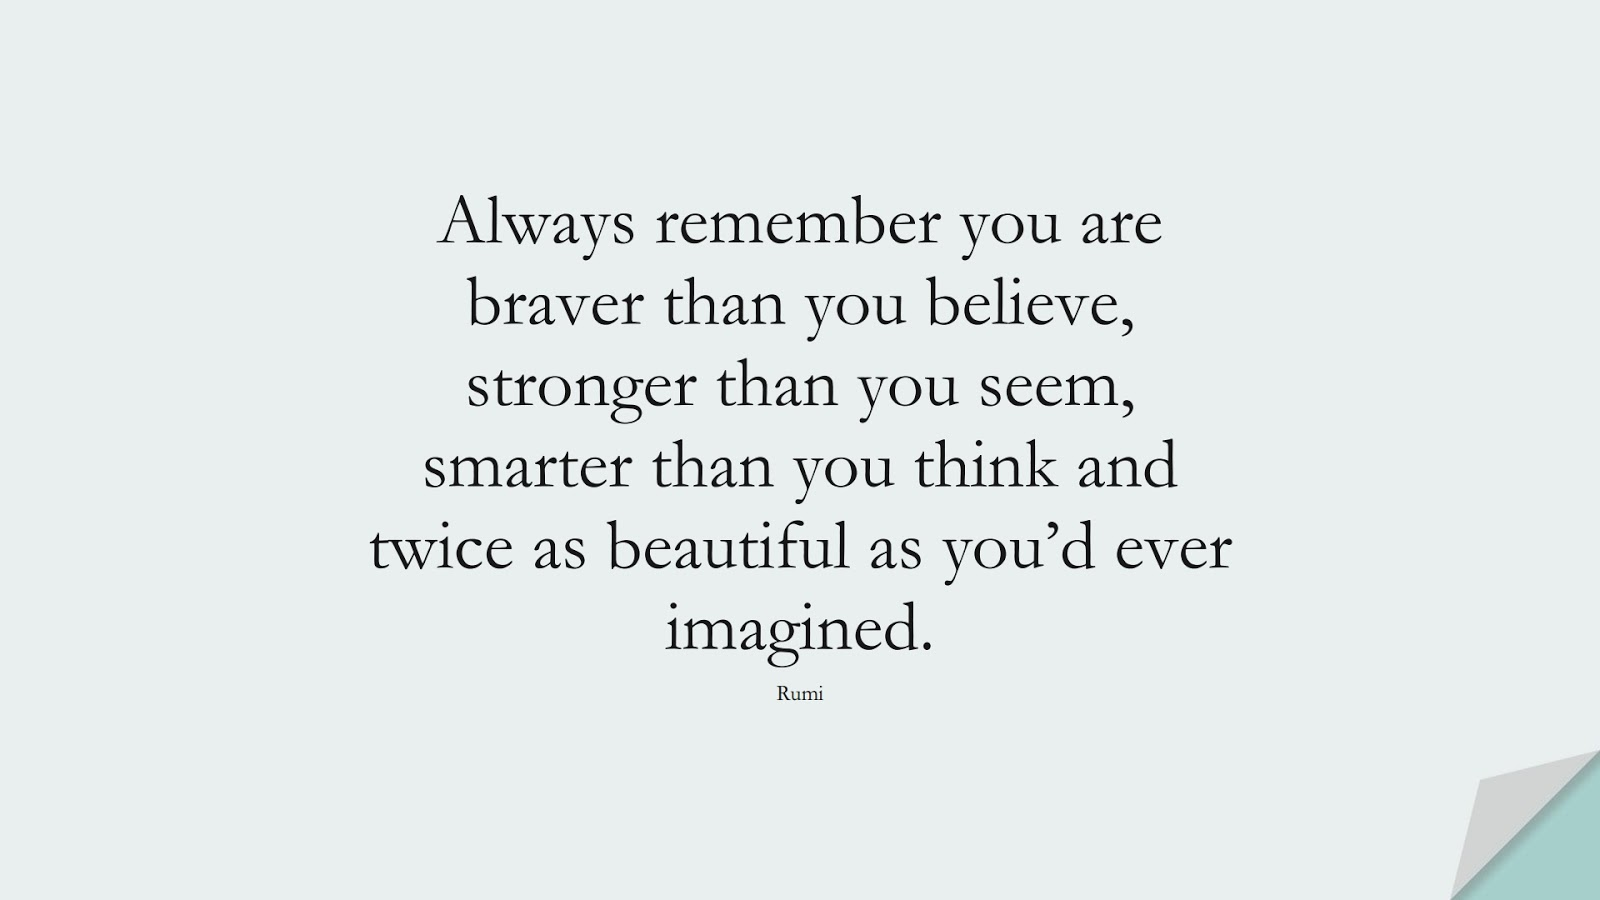 Always remember you are braver than you believe, stronger than you seem, smarter than you think and twice as beautiful as you'd ever imagined. (Rumi);  #RumiQuotes